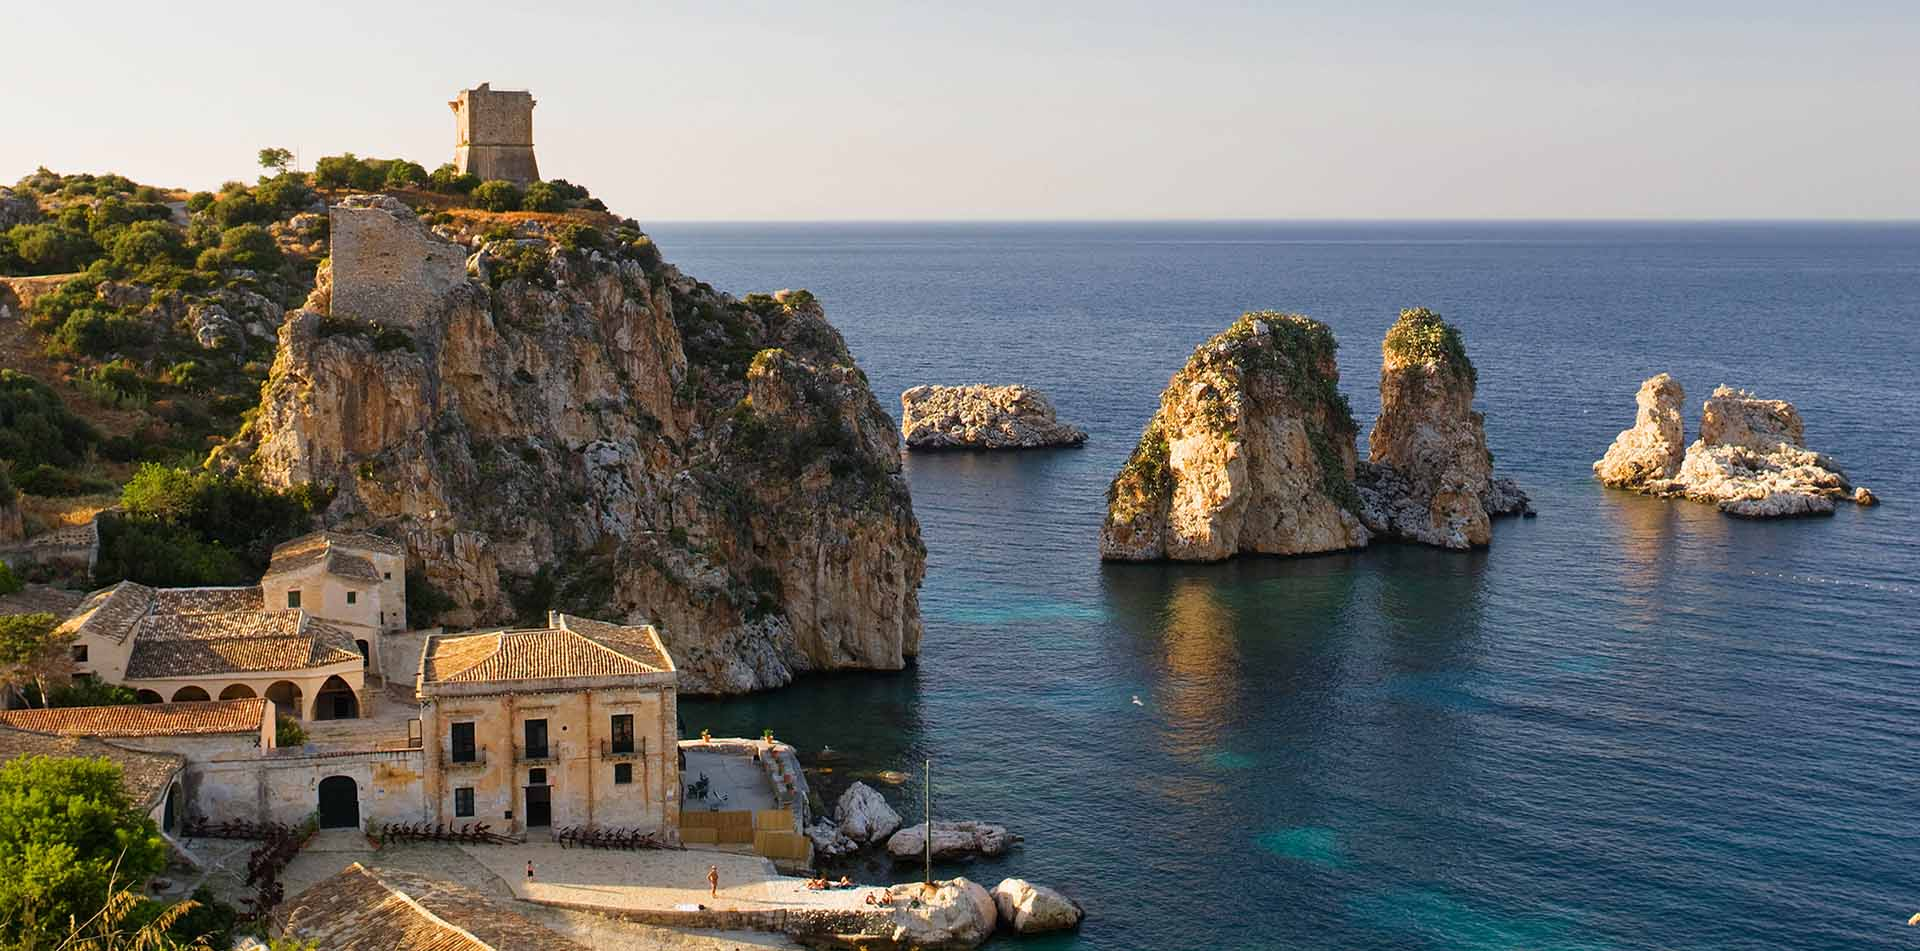 Europe Italy Sicily La Tonnara di Scopello beach with ruins of medieval towers on cliffside - luxury vacation destinations